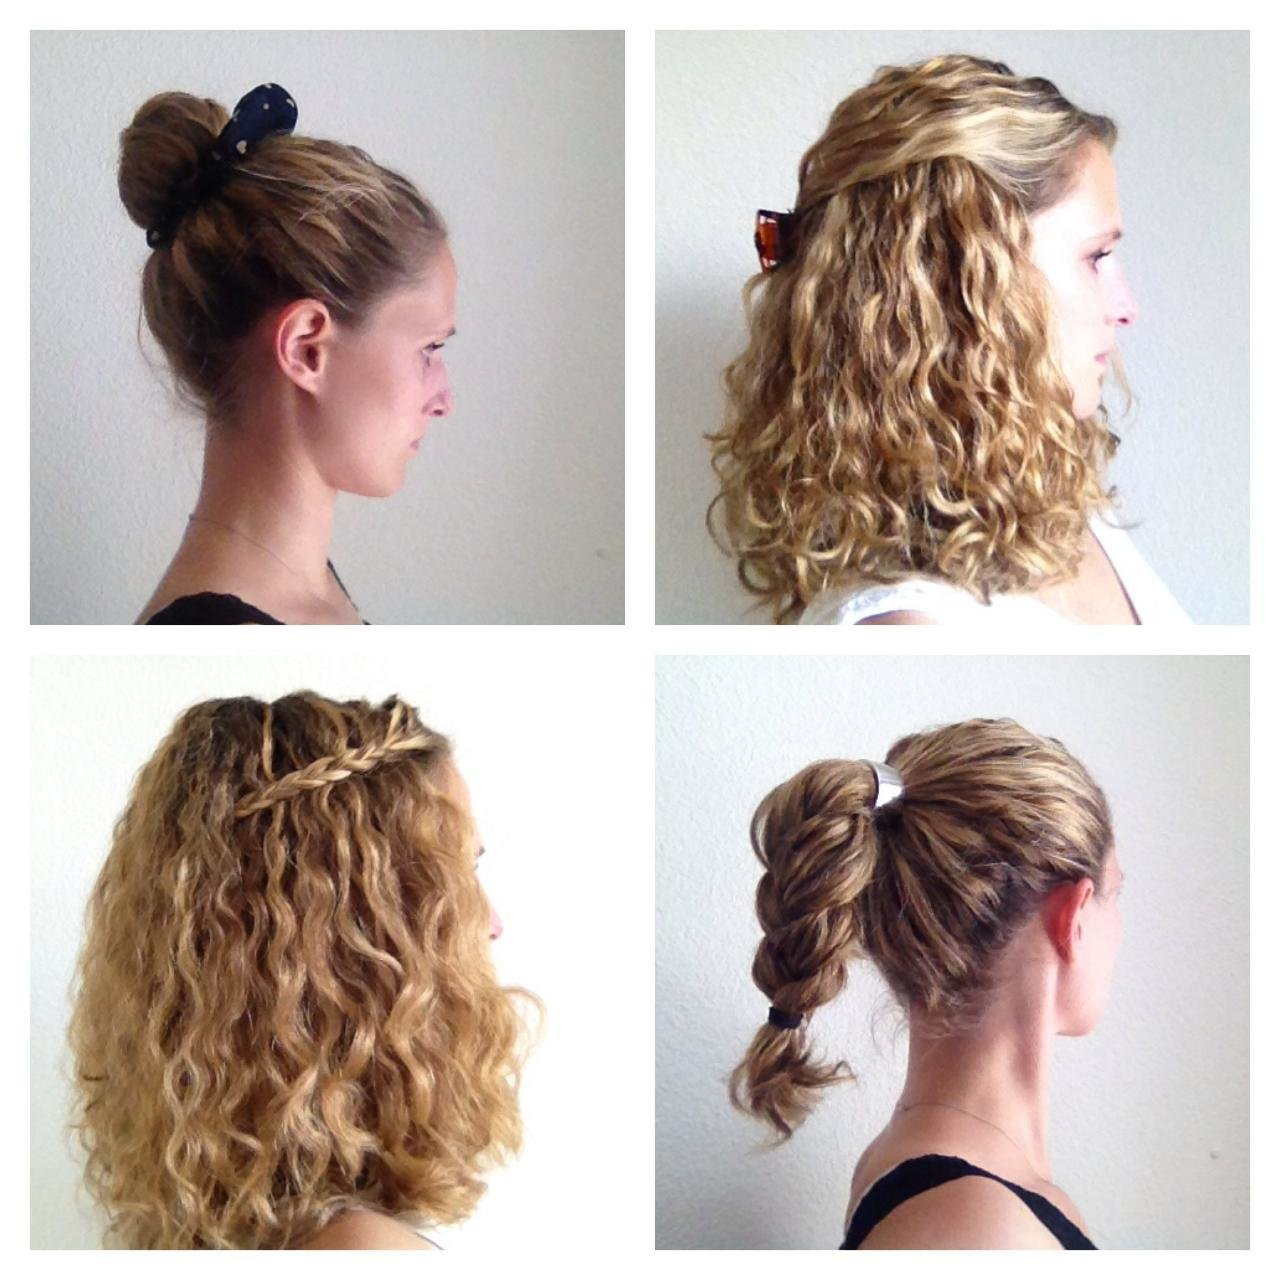 New Diy Easy Simple Hairstyles Without Heat Ideas With Pictures